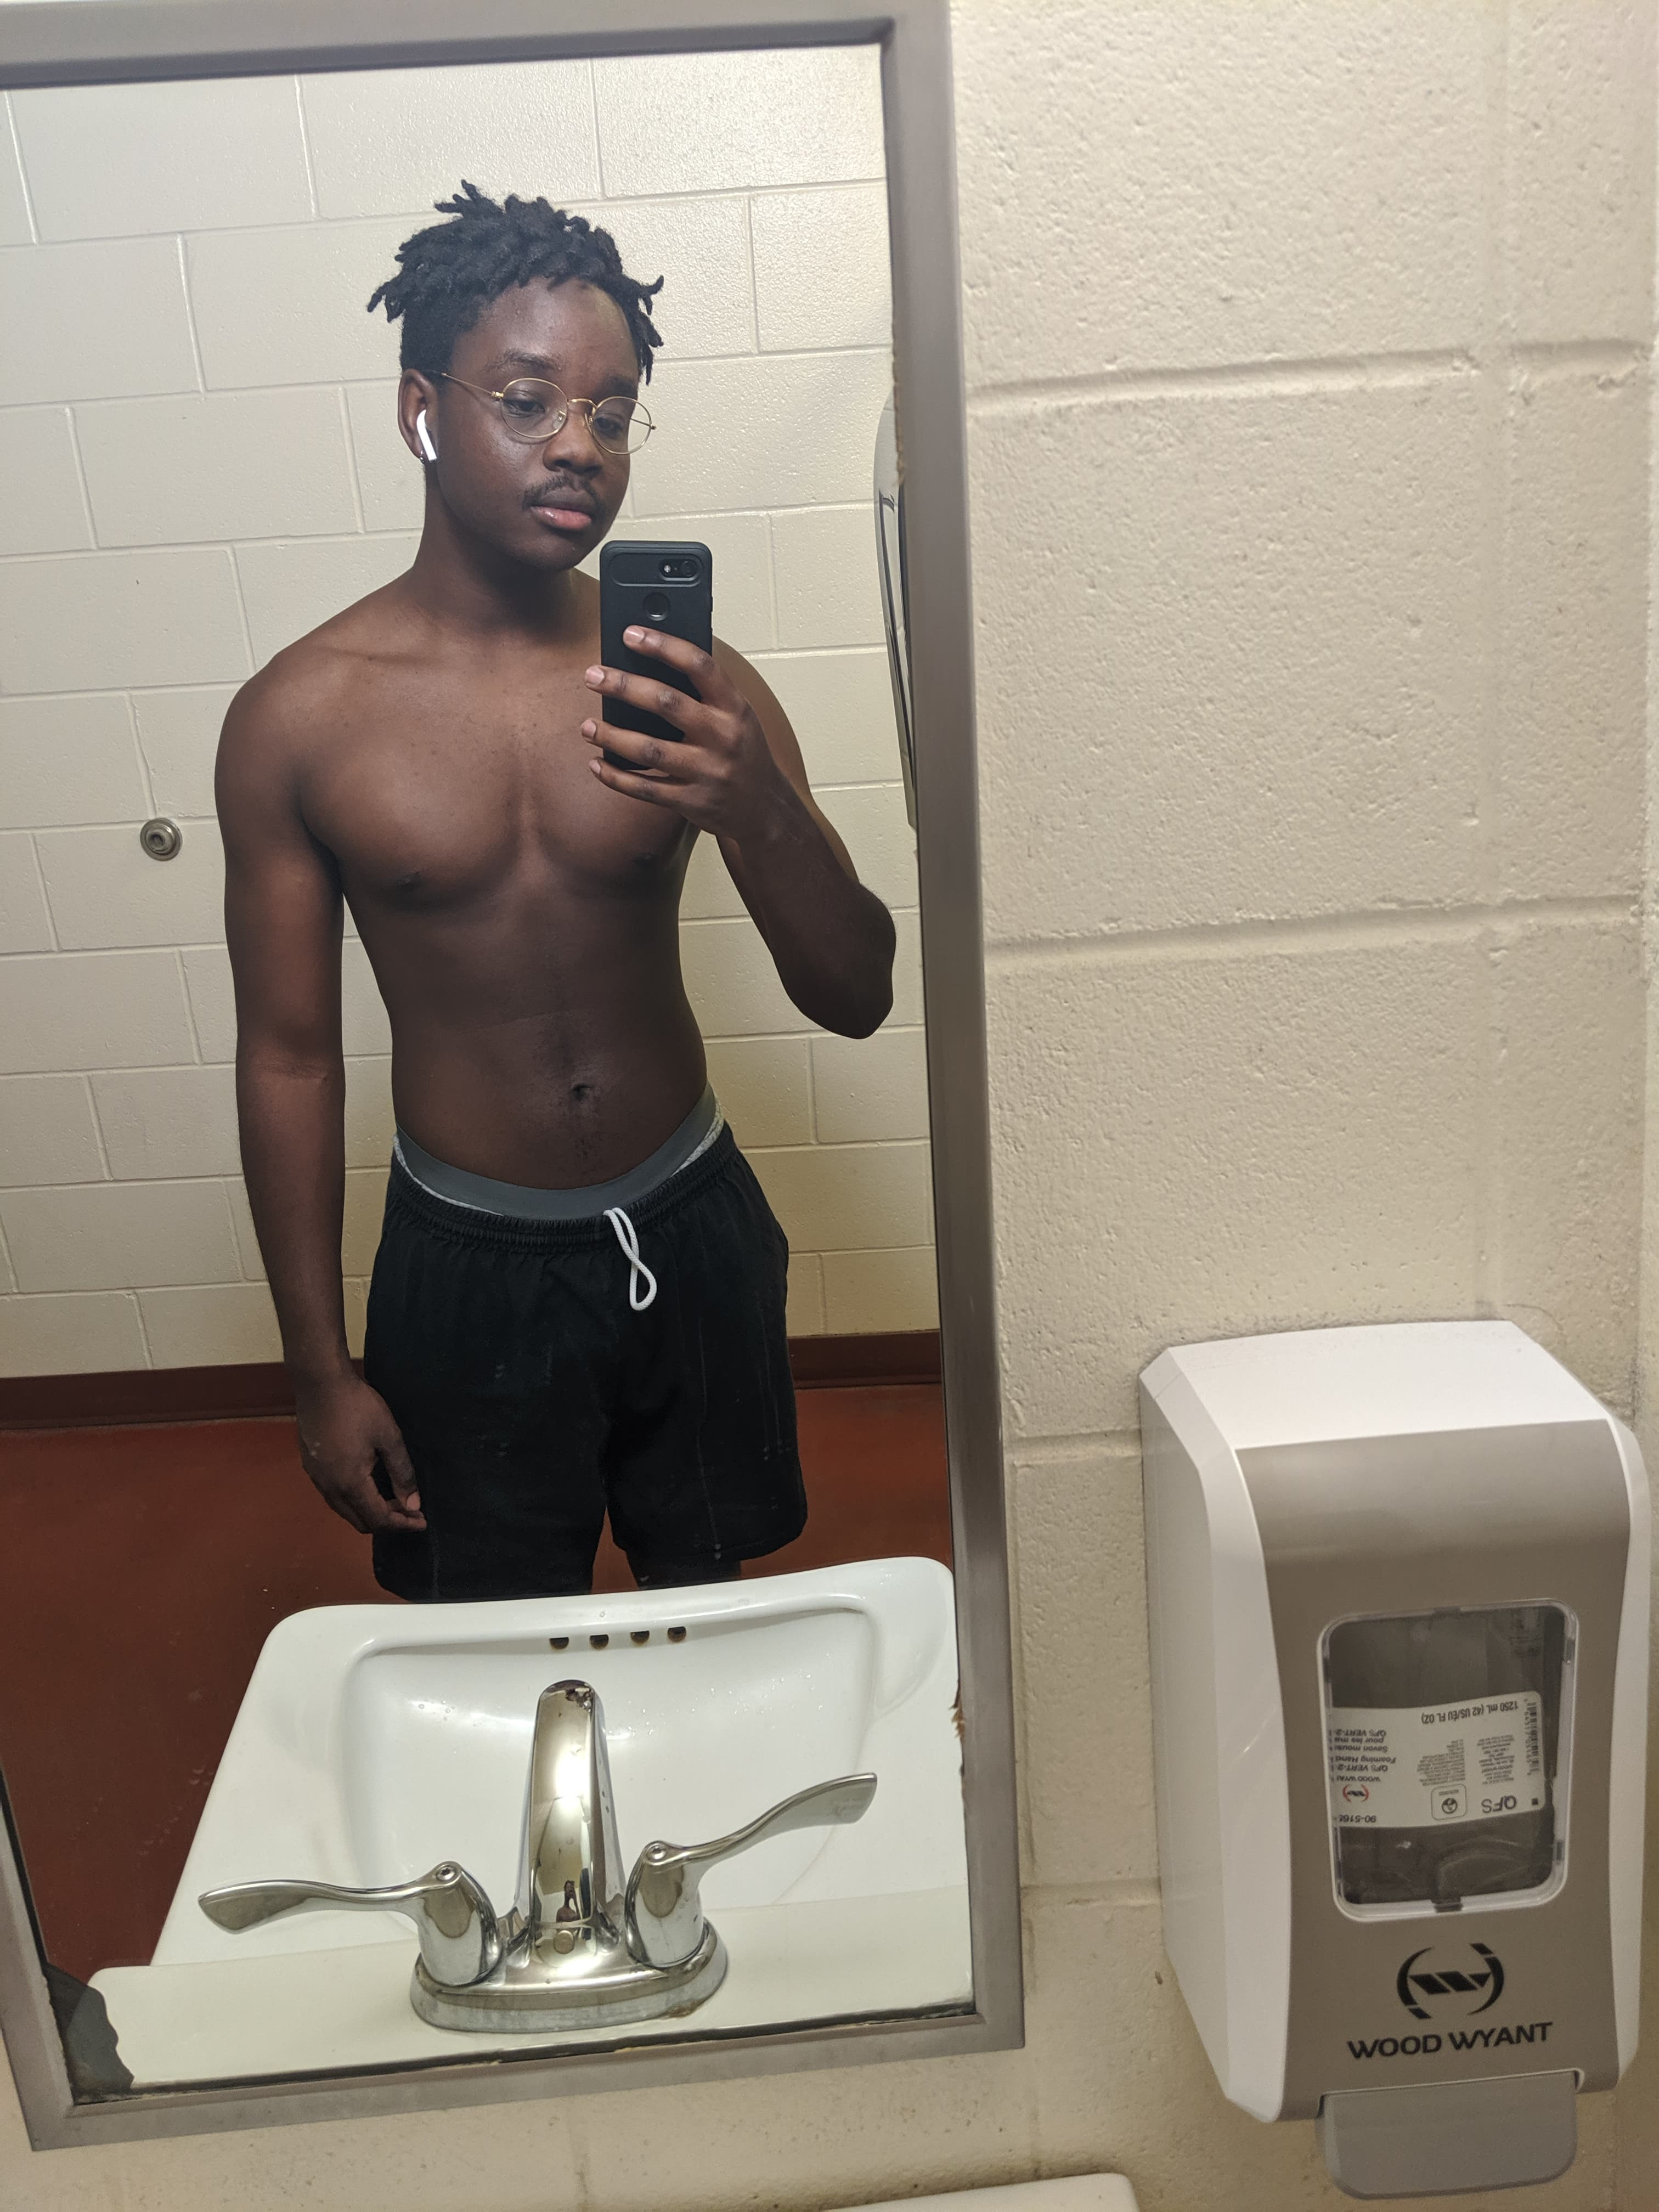 Mirror picture showing cut progress